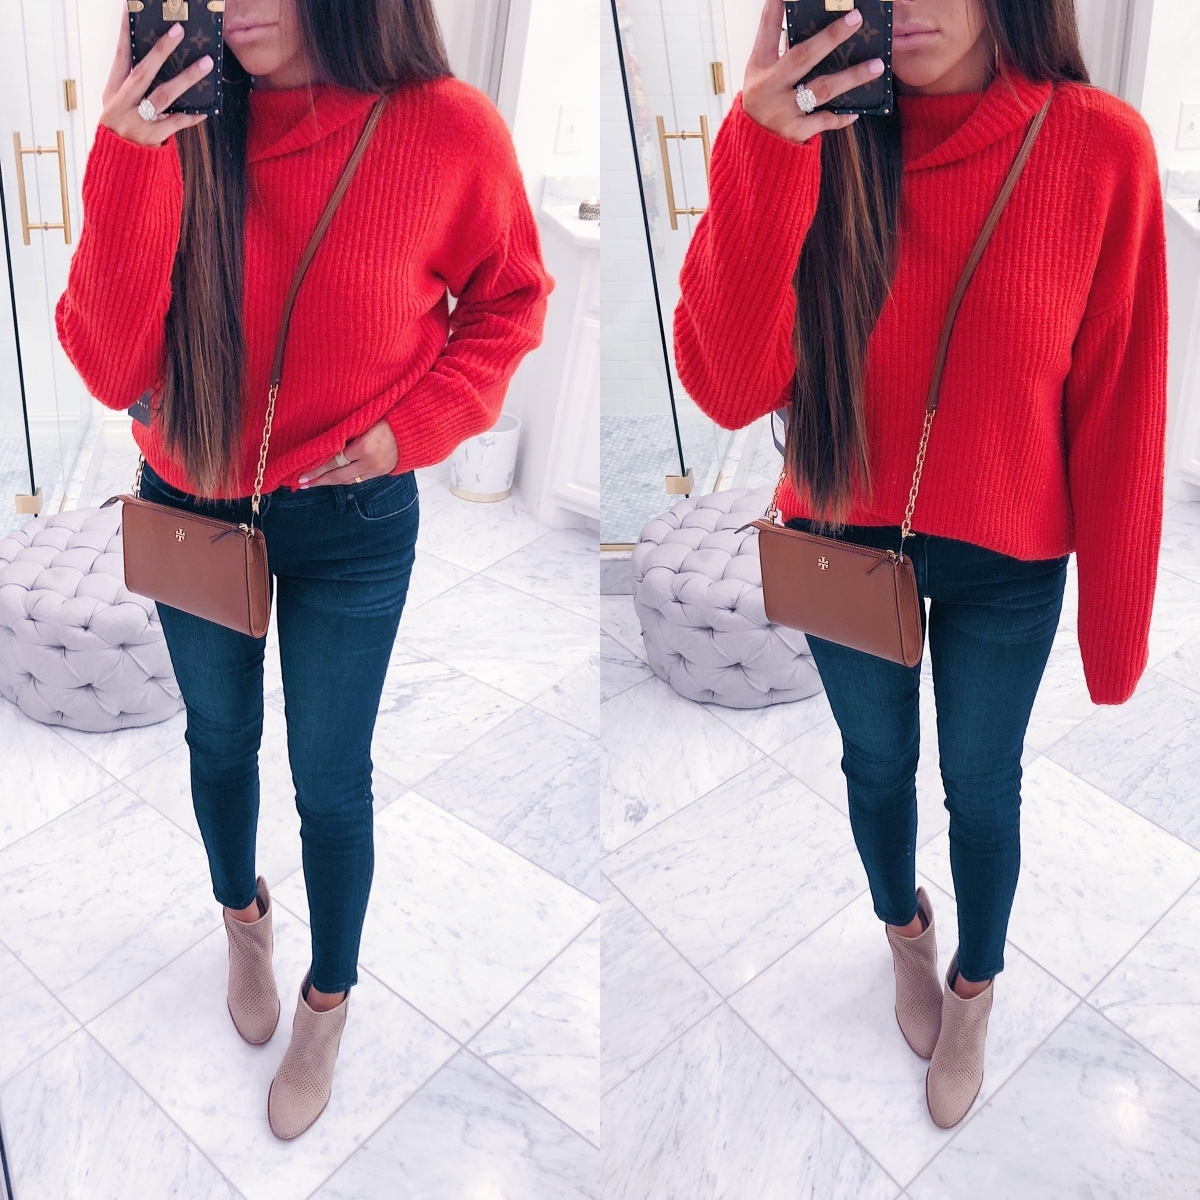 Nordstrom Anniversary Sale 2018, #NSALE2018, emily ann gemma, fashion bloggers covering Nordstrom sale